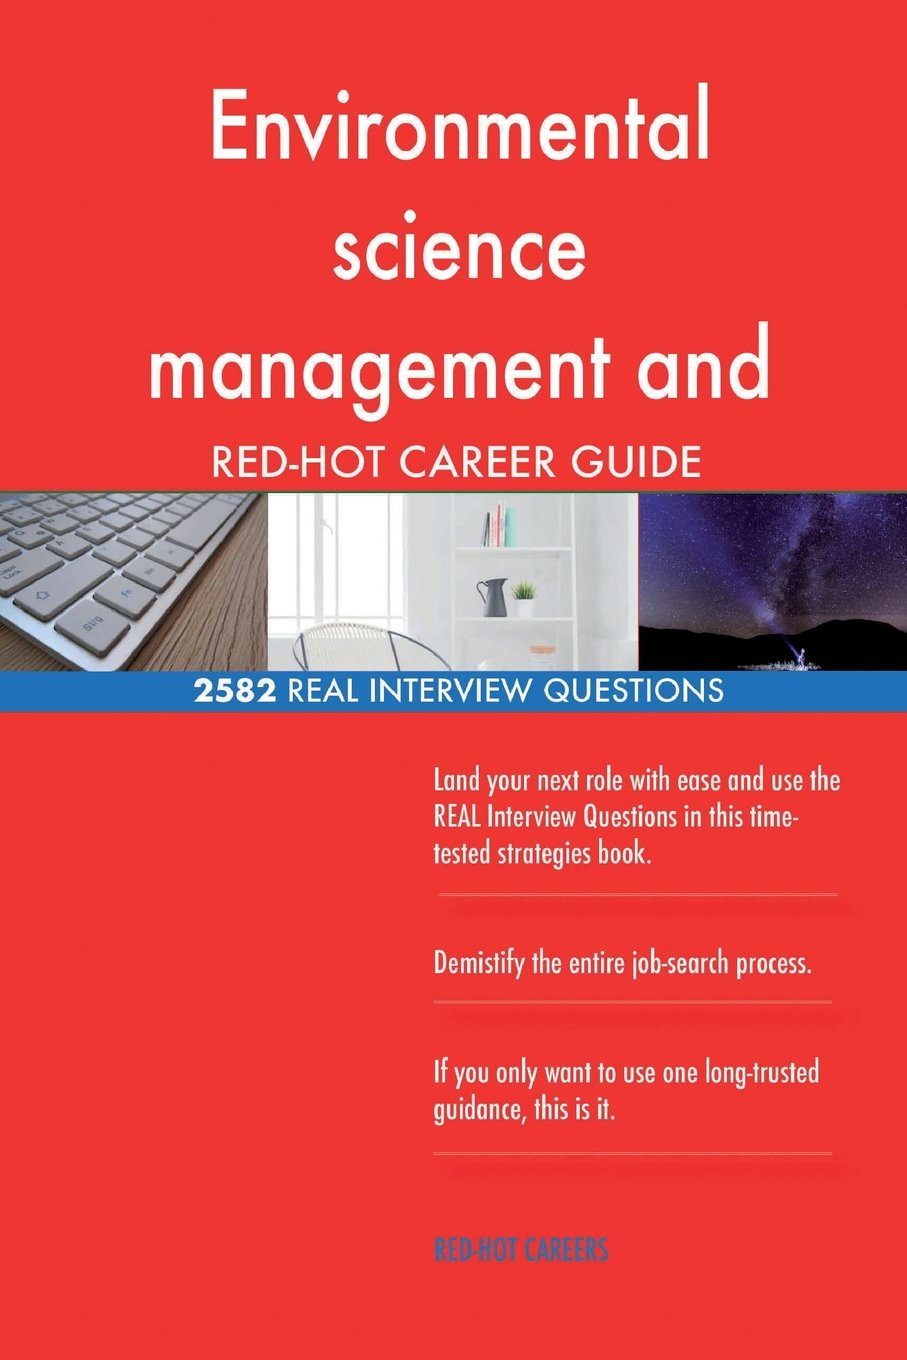 Read Online Environmental science management and policy professor RED-HOT Career; 2582 REAL ebook